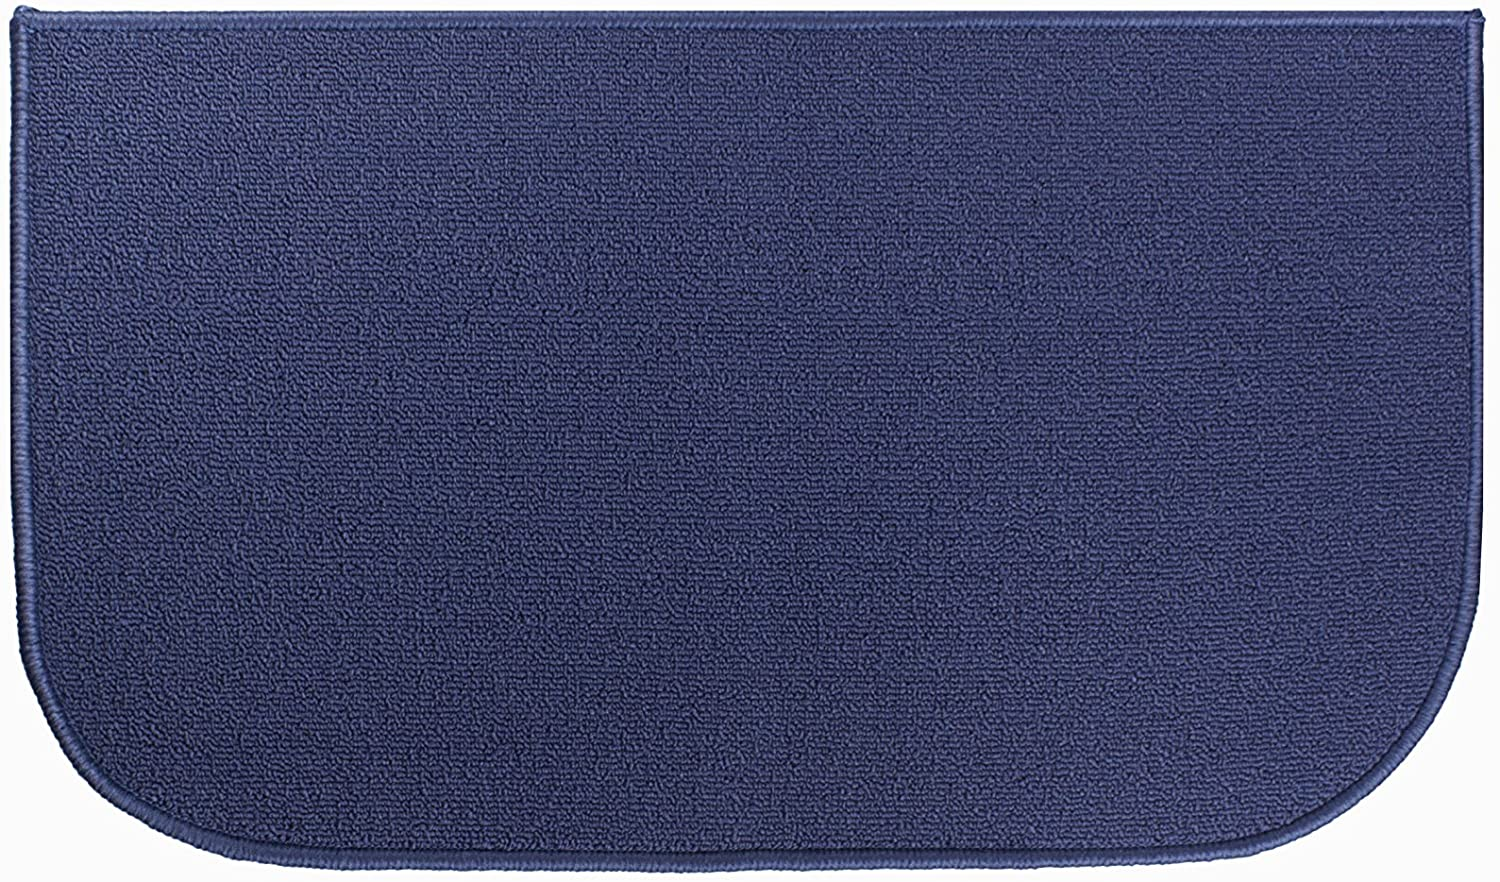 Ritz Accent, Stain Resistant Kitchen Floor Rug, with Non Slip Latex Backing, 18-inch by 30-inch, Blue